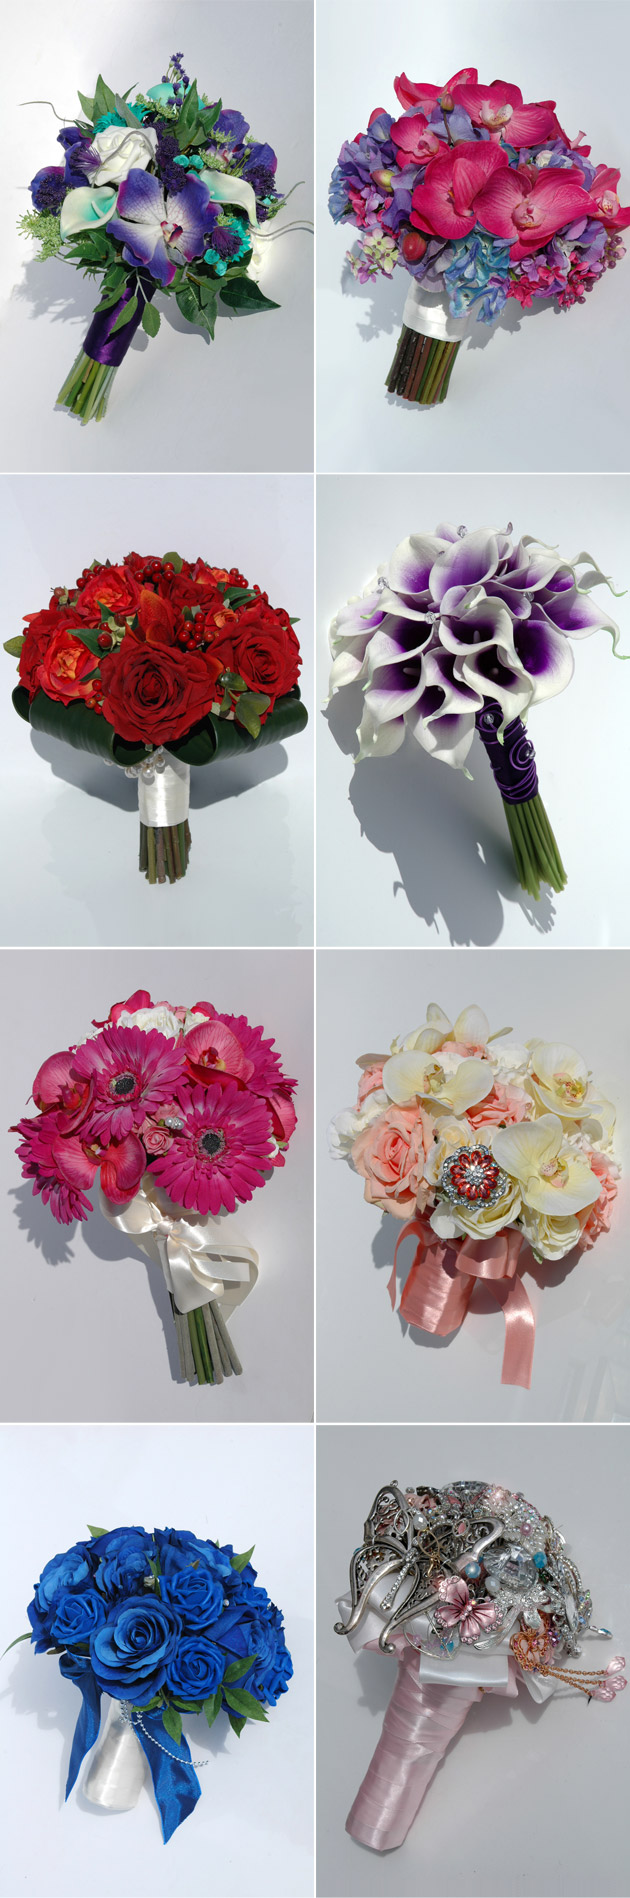 Silk Blooms Selection of Artificial Flowers and Bouquets